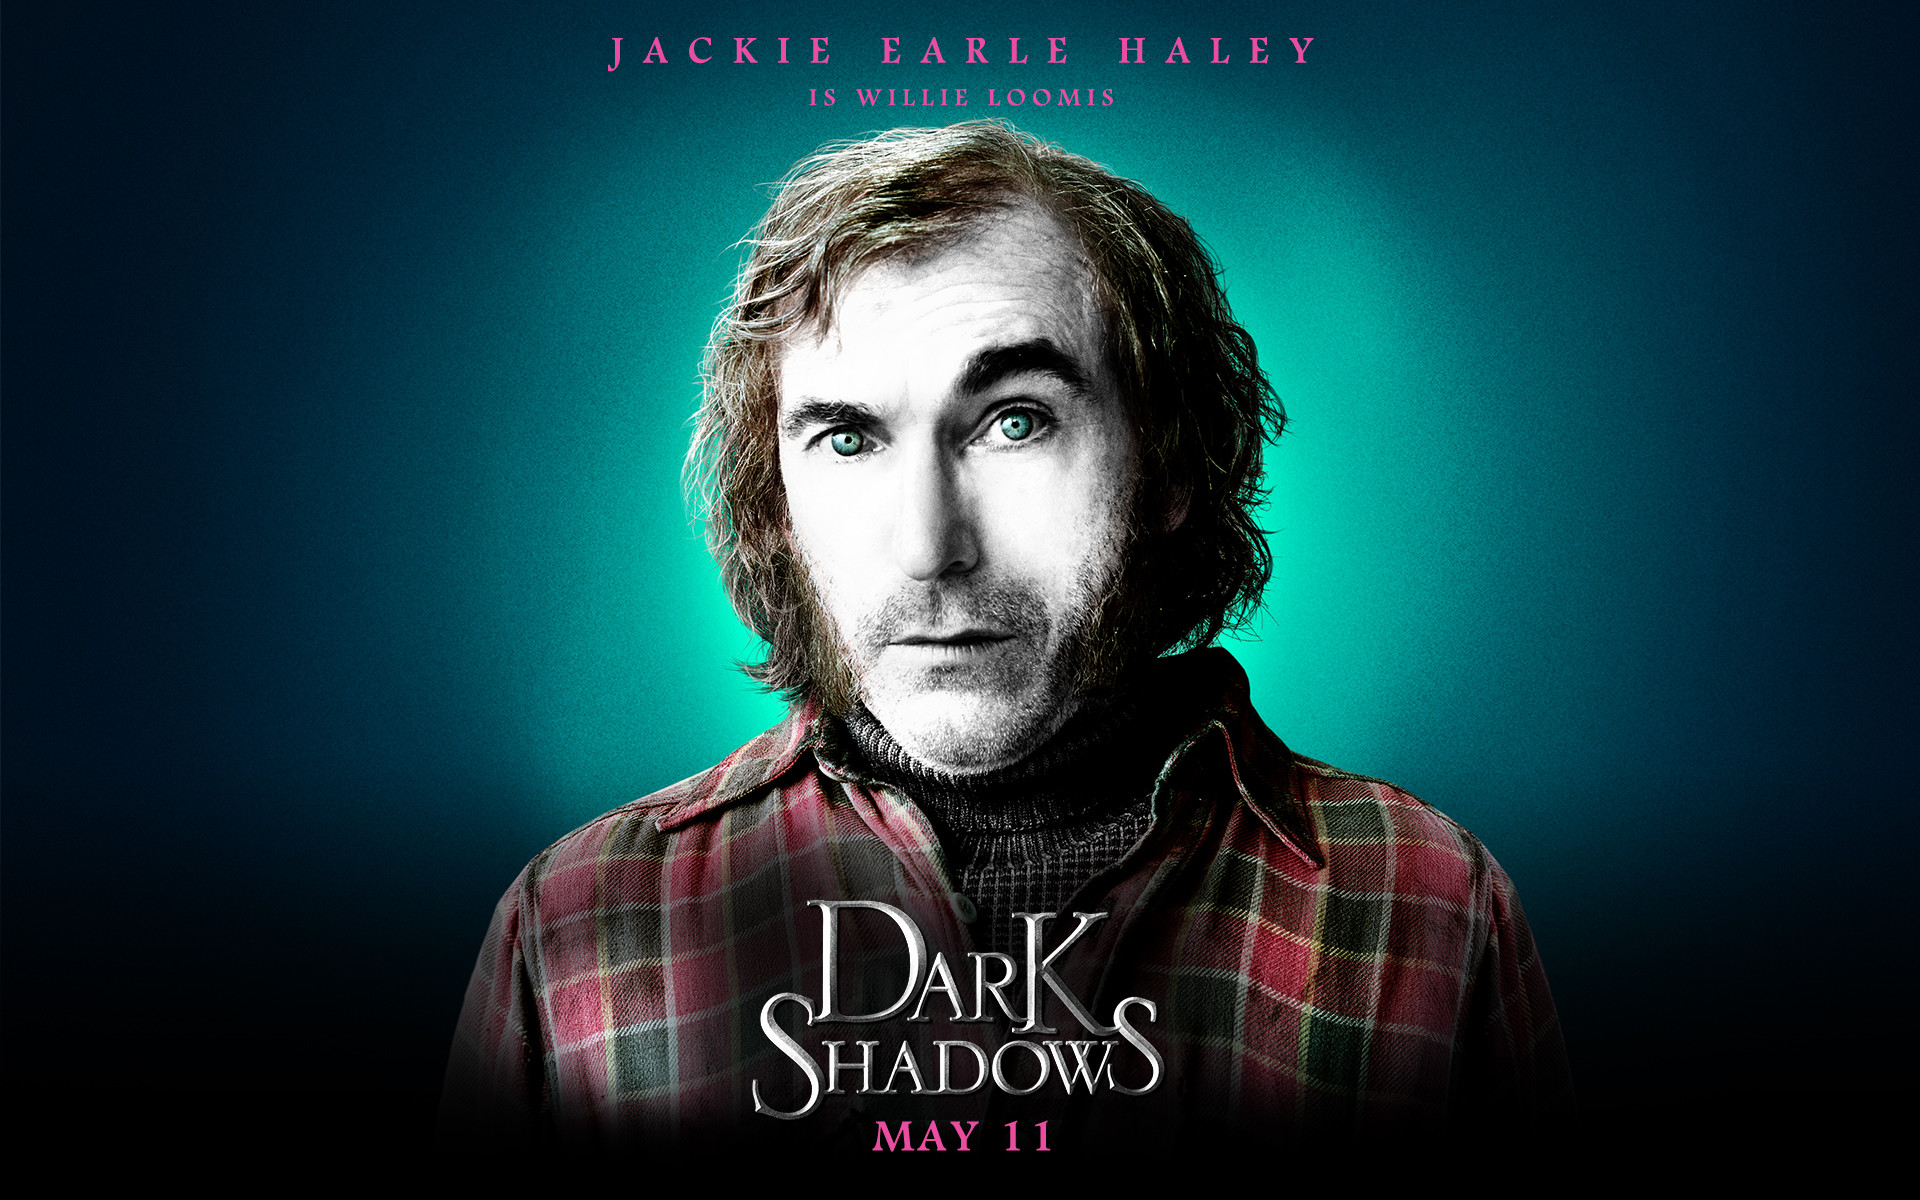 1920x1200 Dark Shadows wallpapers 1920×1200 – Jacke Earle Haley as Willie Loomis